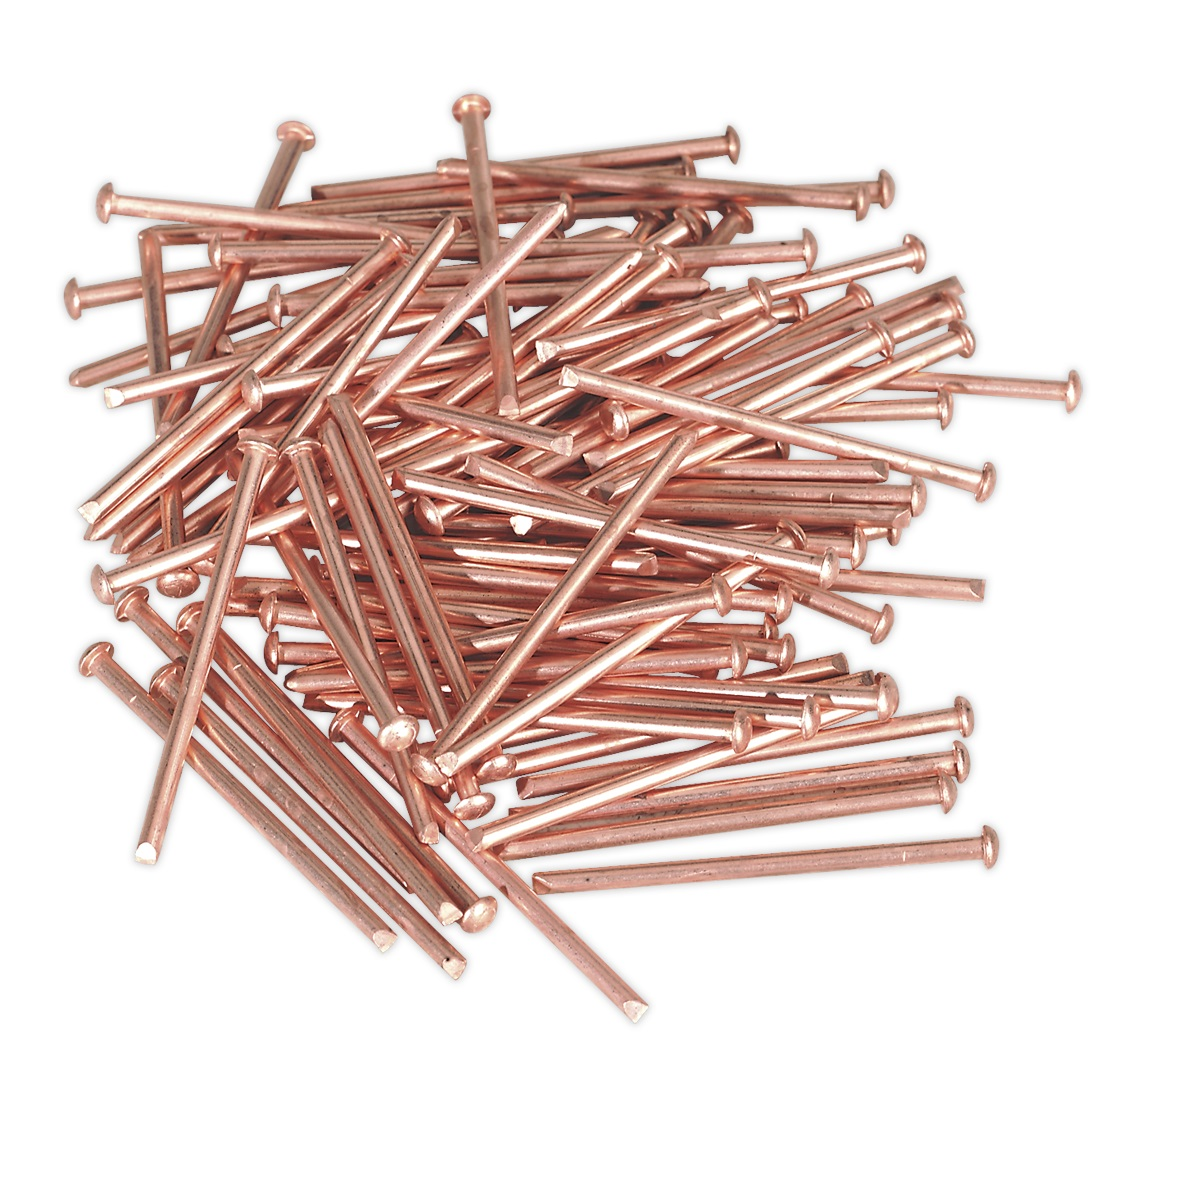 Sealey Stud Welding Nail 2.5 x 50mm Pack of 100 PS/0002   One of a comprehensive range of accessories for stud/spot welders.   toolforce.ie